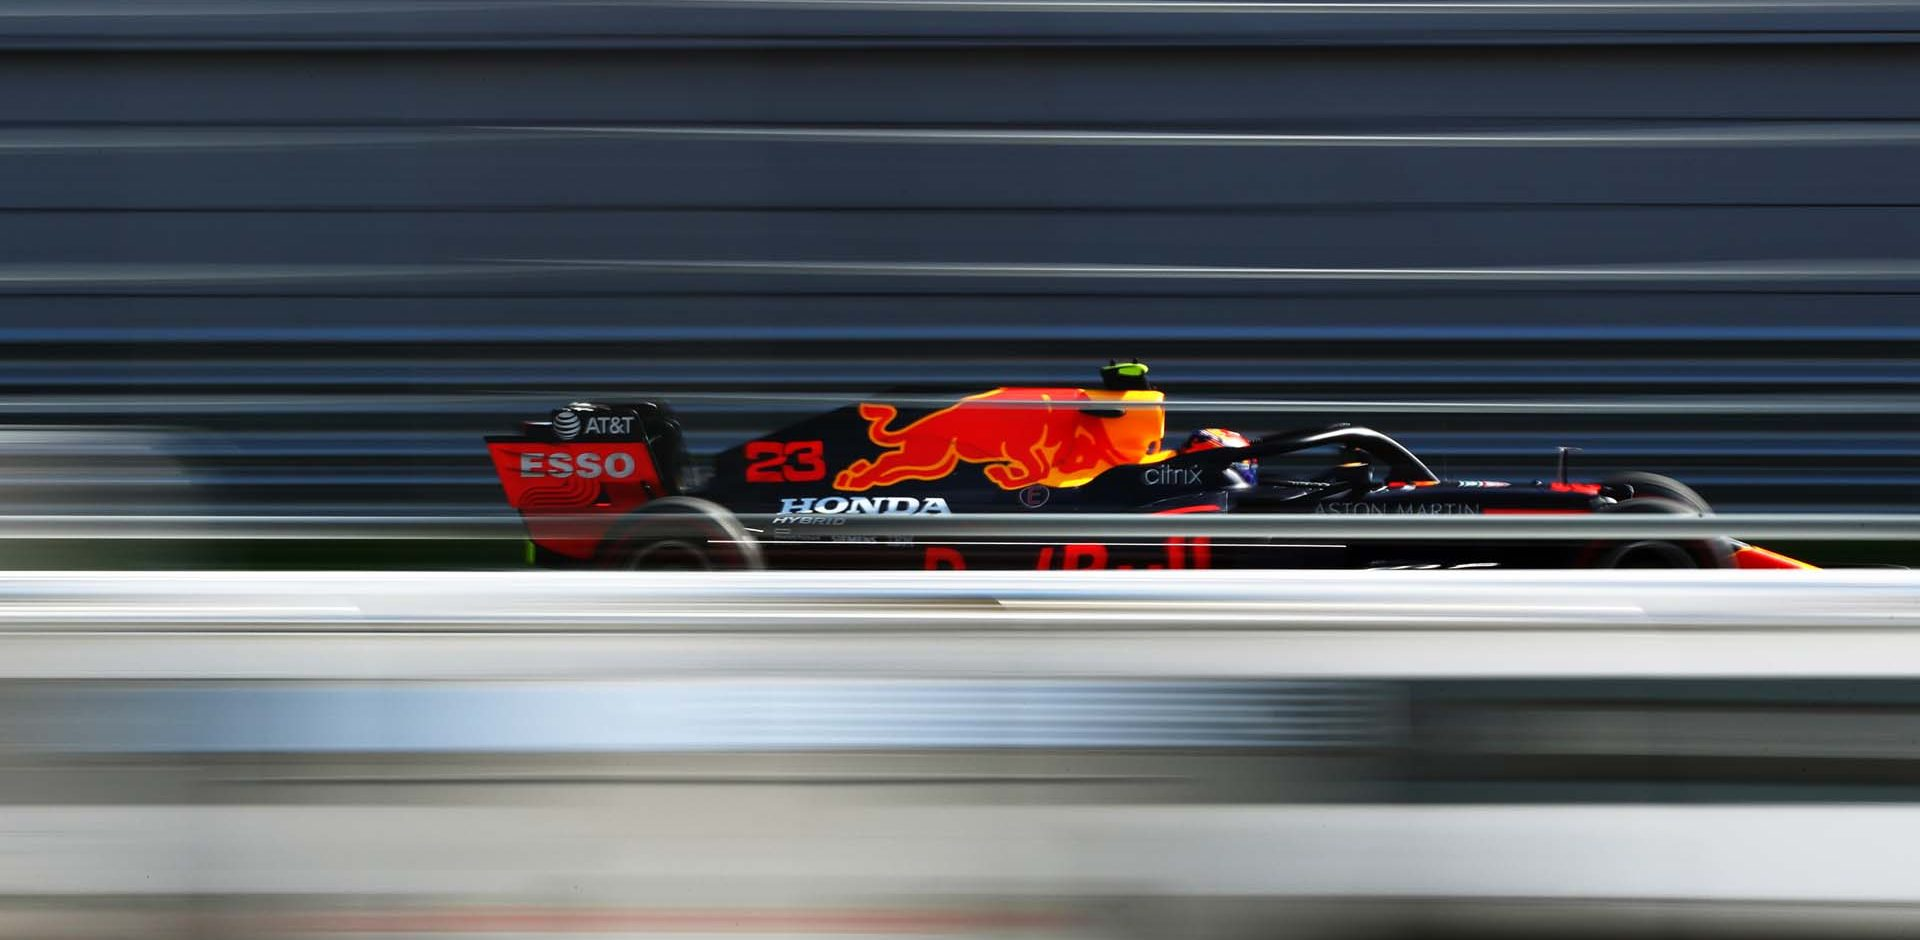 SOCHI, RUSSIA - SEPTEMBER 25: Alexander Albon of Thailand driving the (23) Aston Martin Red Bull Racing RB16 on track during practice ahead of the F1 Grand Prix of Russia at Sochi Autodrom on September 25, 2020 in Sochi, Russia. (Photo by Mark Thompson/Getty Images)